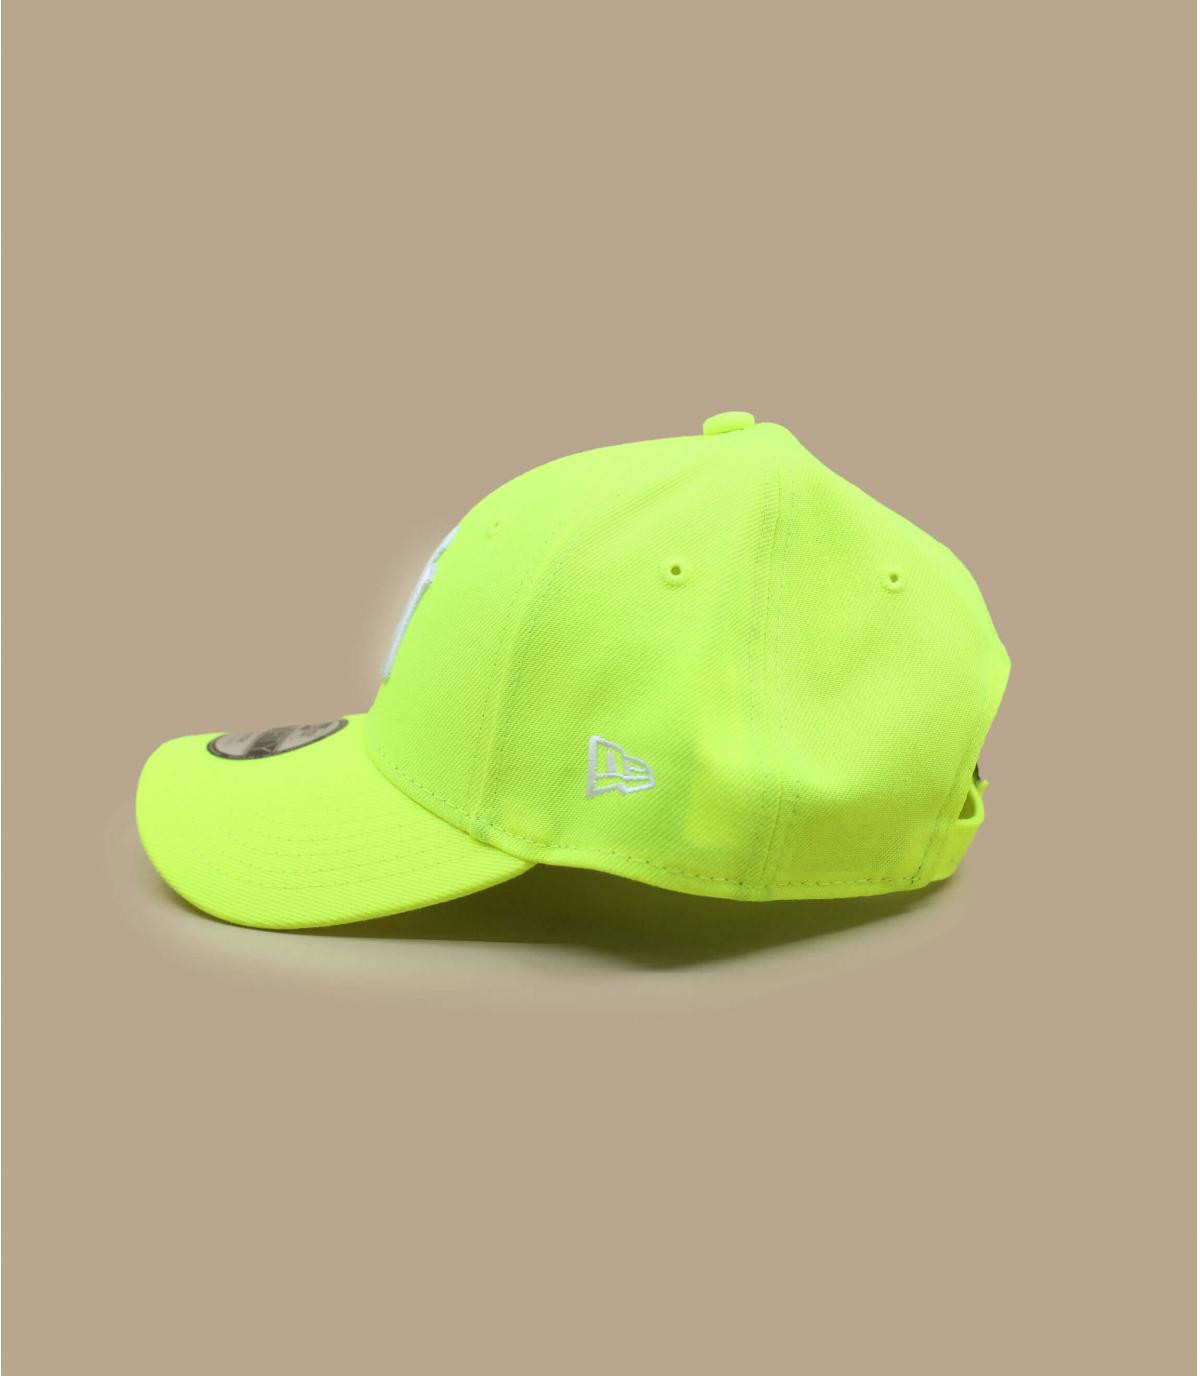 Détails Casquette Kids Neon Pack NY 940 upright  yellow - image 3